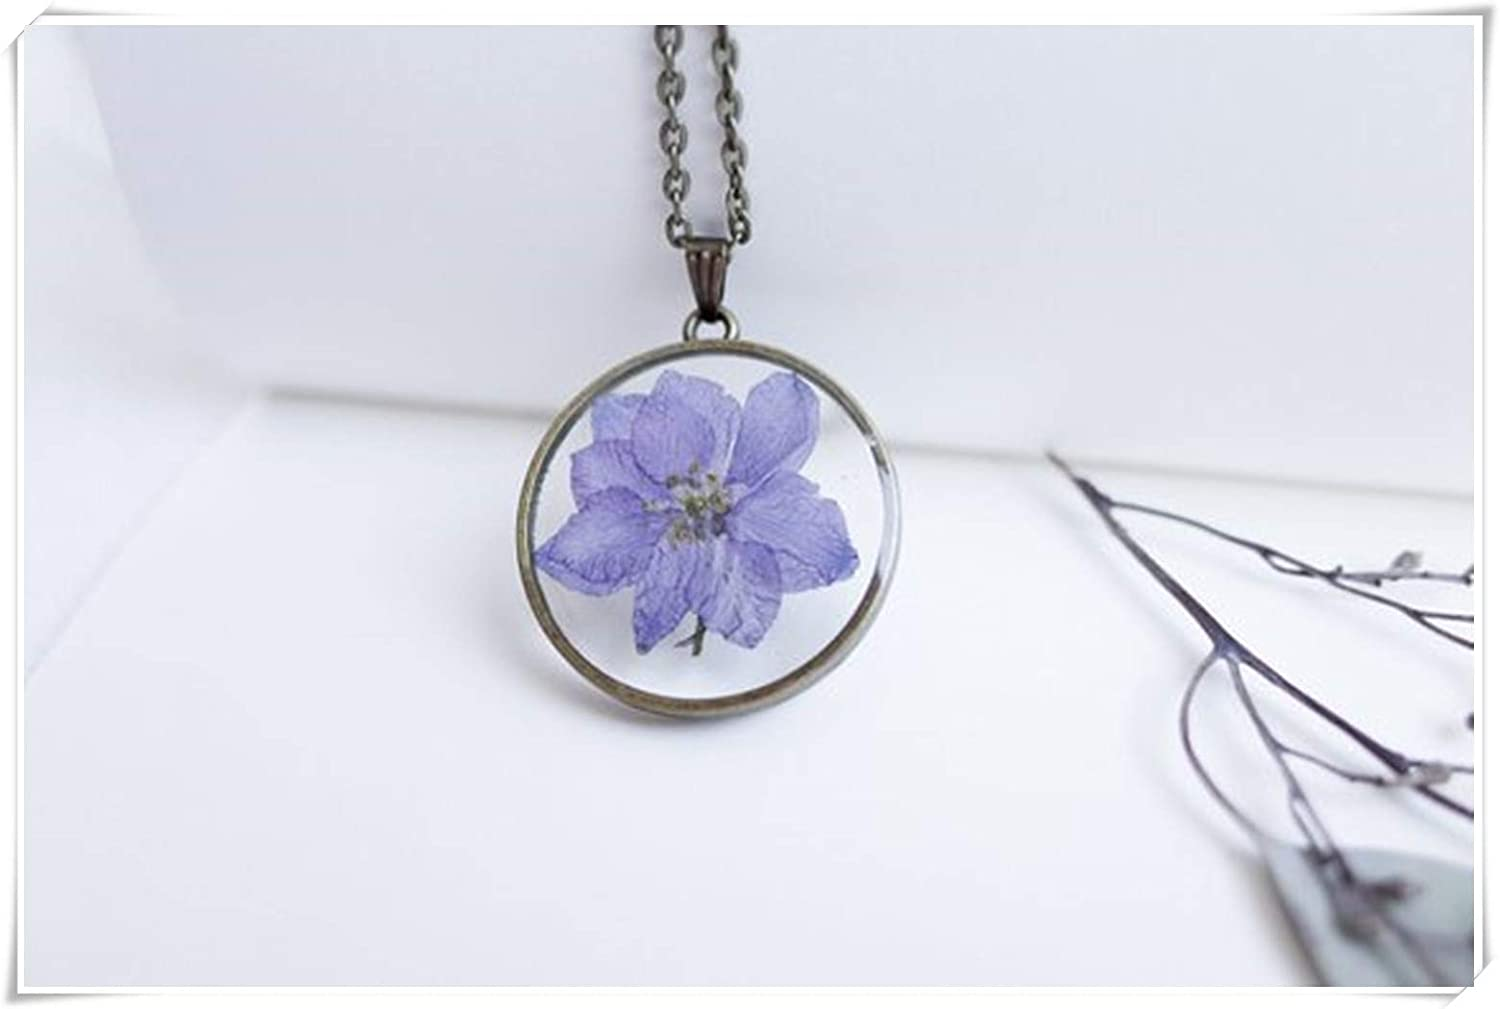 Dandelion Real Flower Necklace,Pressed Flower Jewelry, Terrarium Pendant, Wedding Gift, Botanic Pendants, Delphinium Flower, Resin Necklace wish dandelion